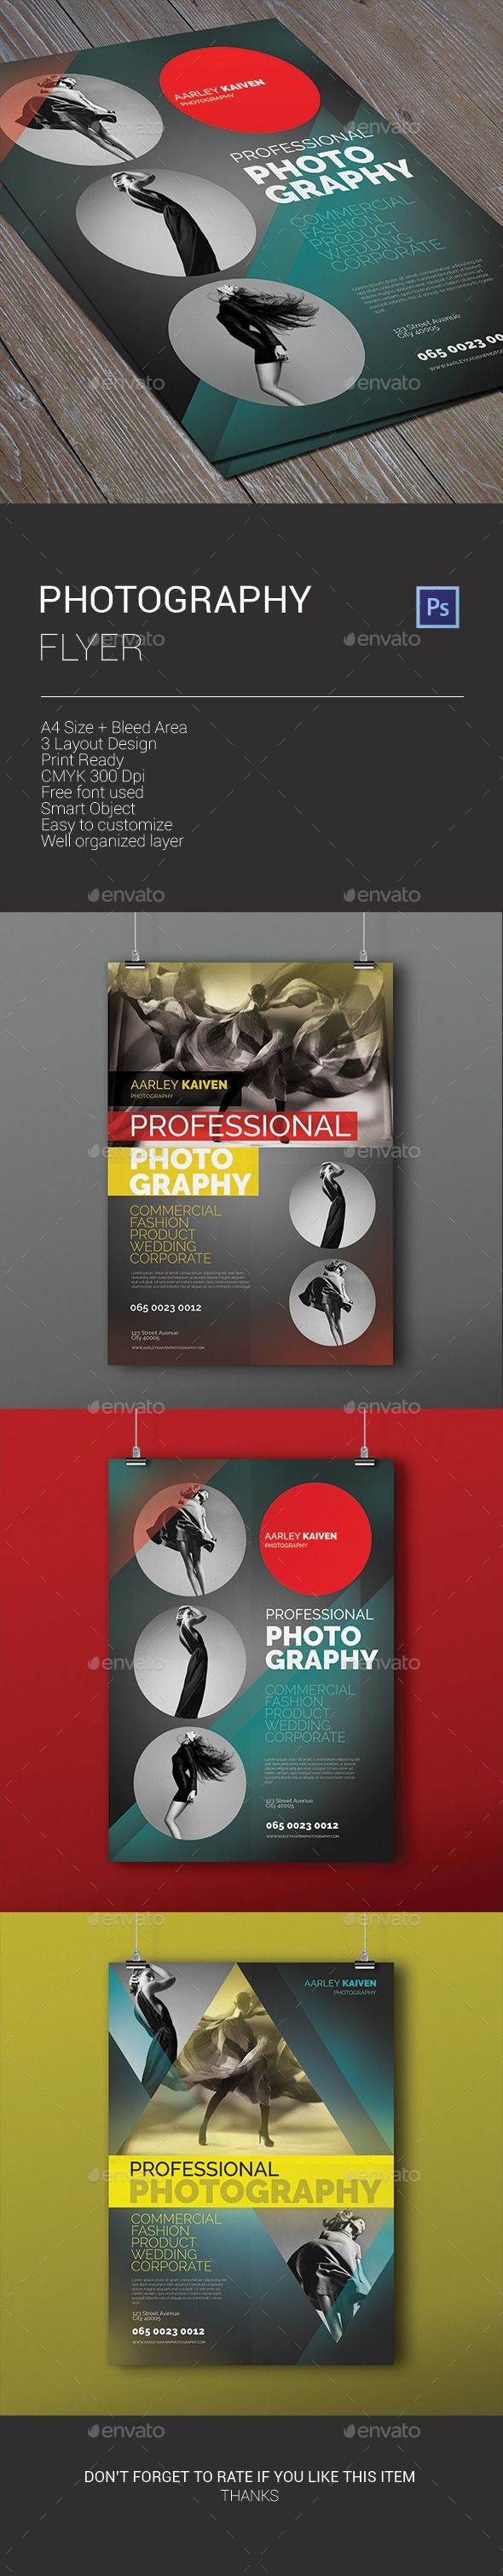 best ideas about photography flyer graphic photography flyer